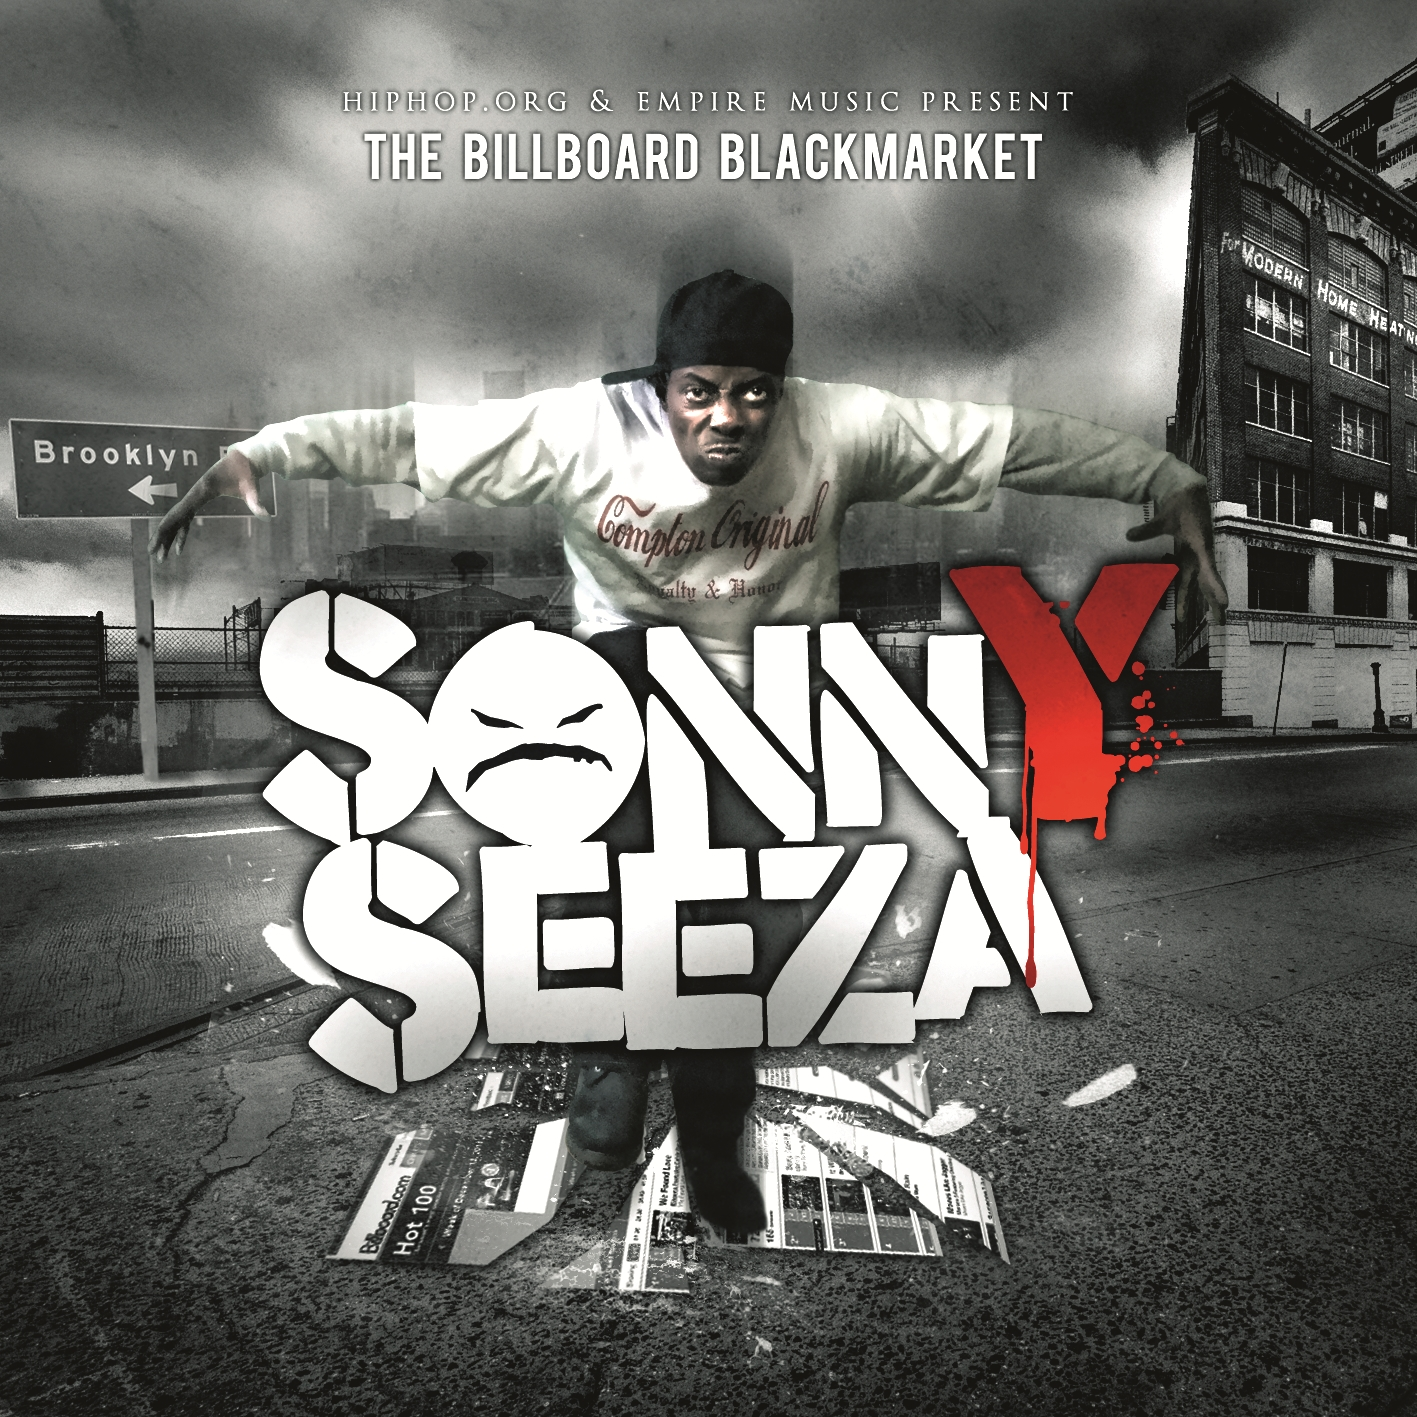 Sonny Seeza (Onyx) - The Billboard Blackmarket